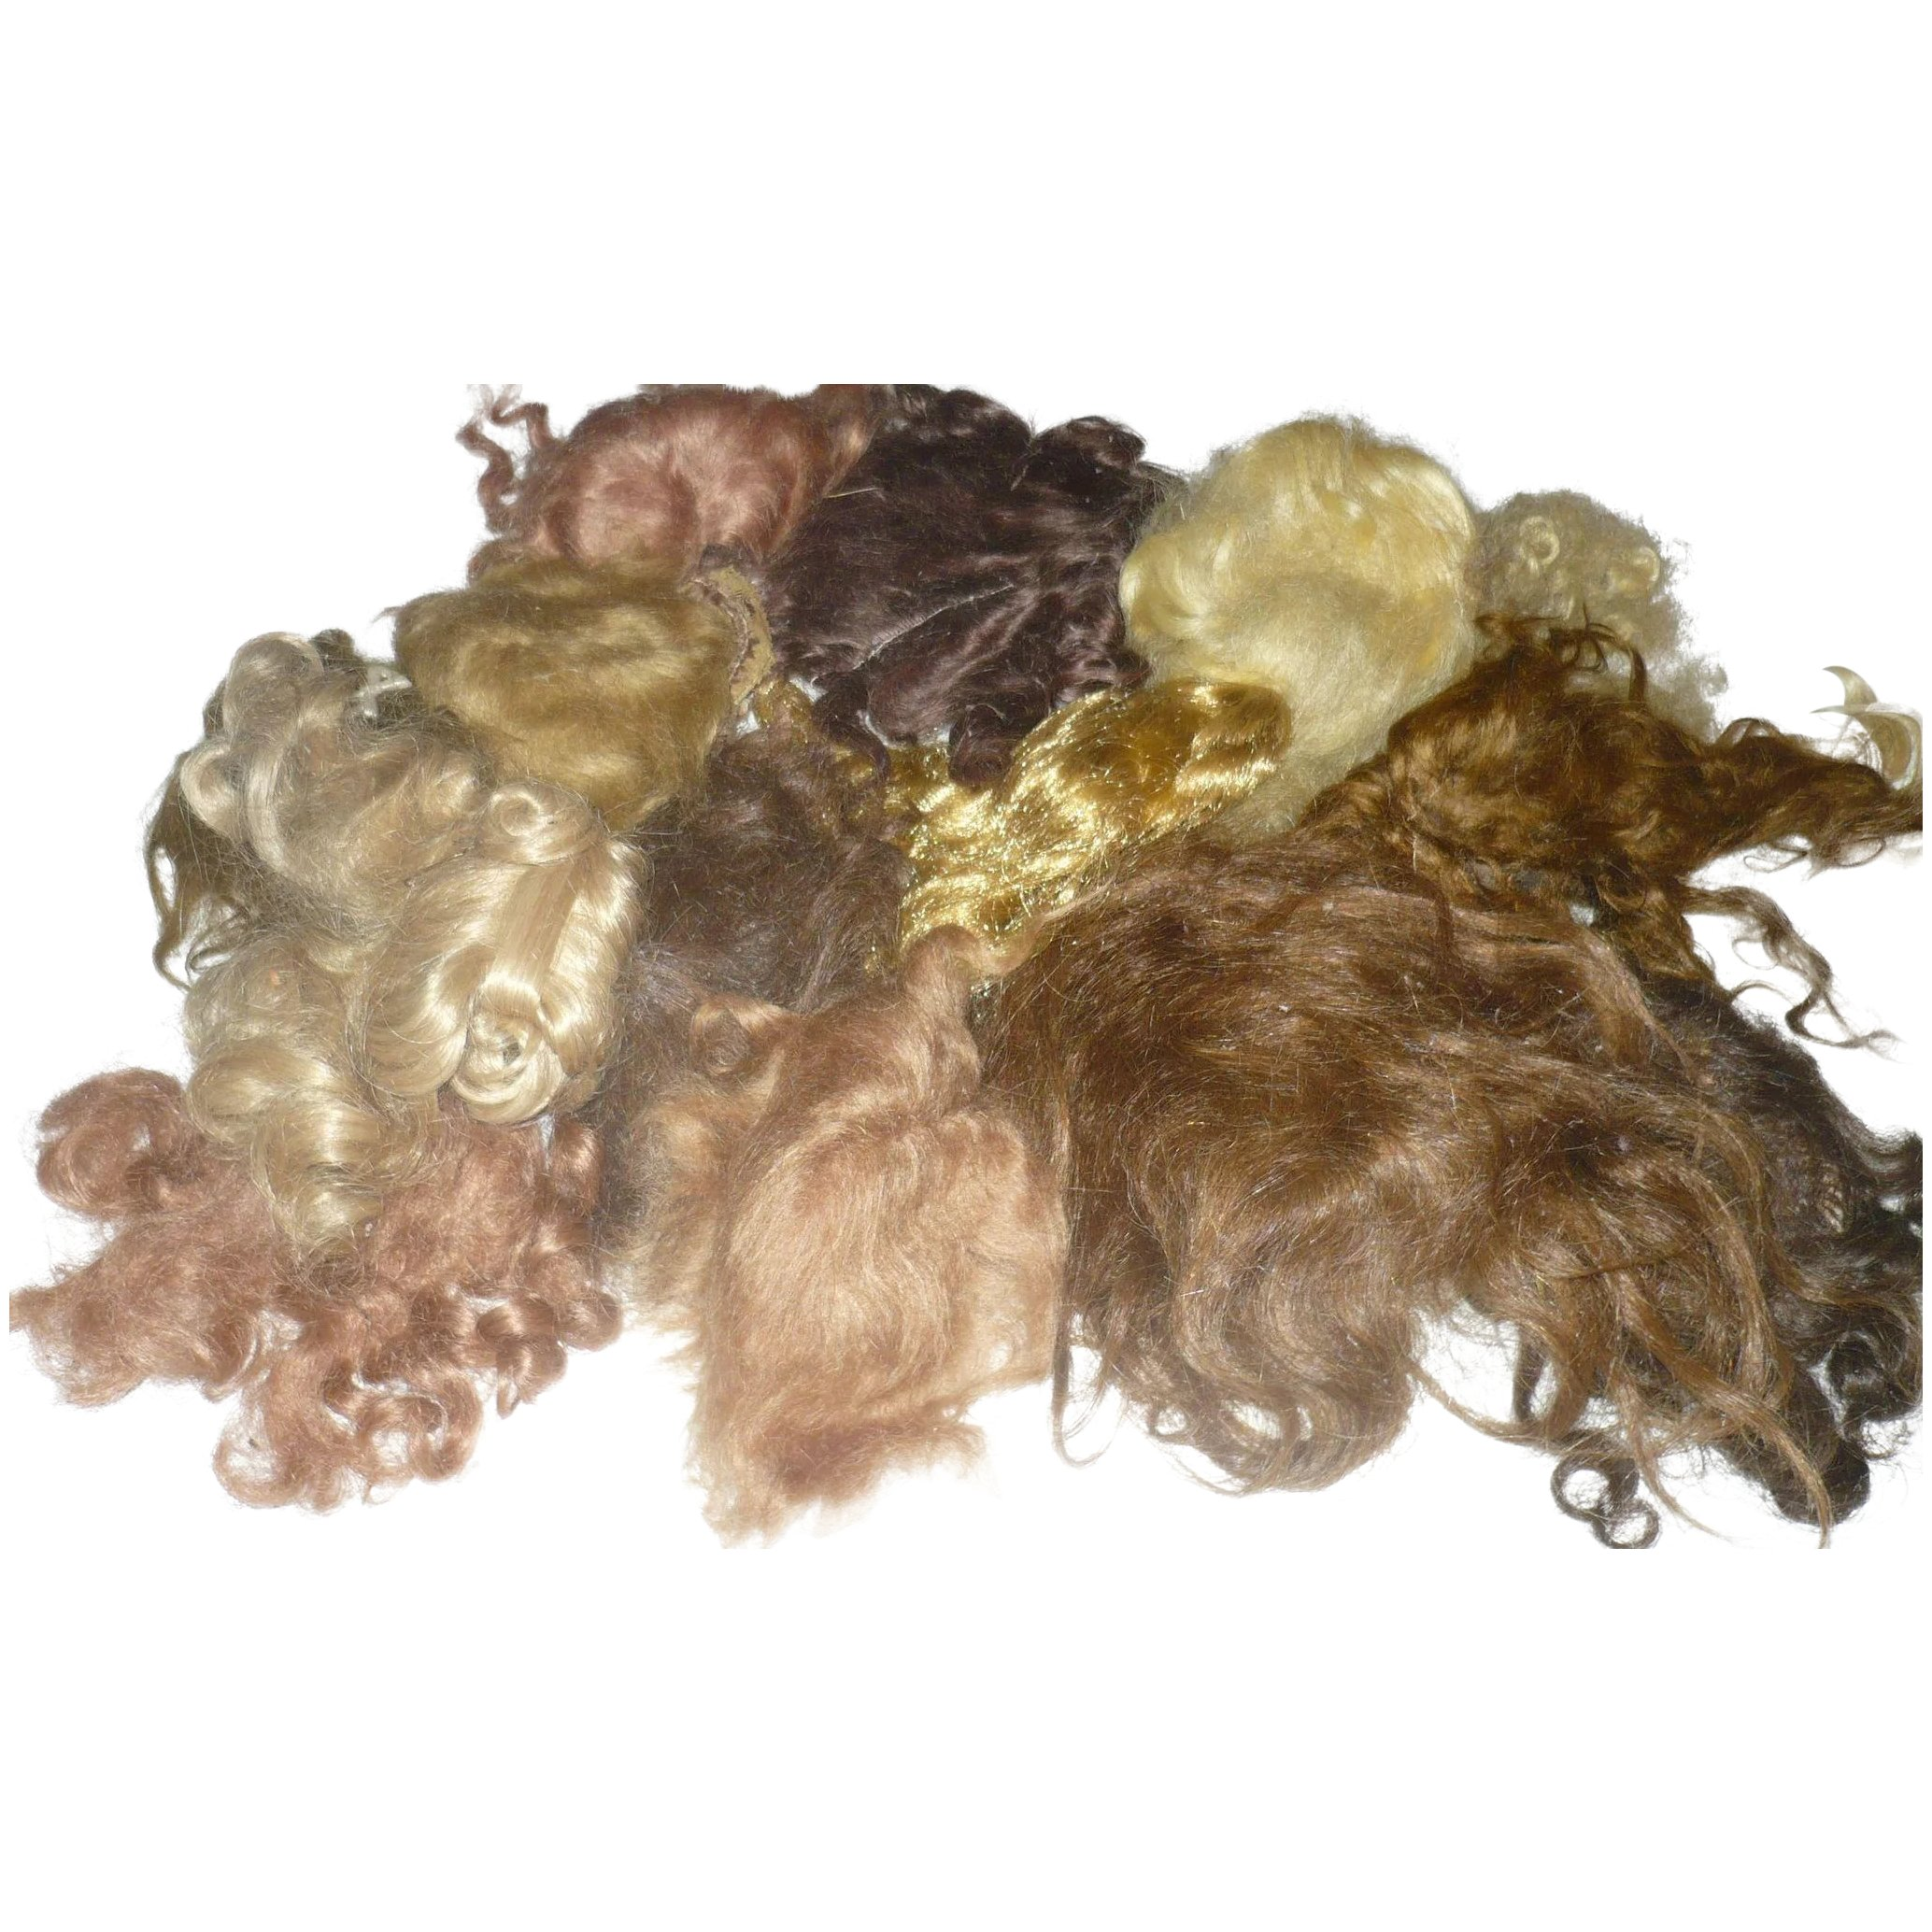 14 Old Doll Wigs For Repair Or Doll Wig Making Americana Whimsy Ruby Lane